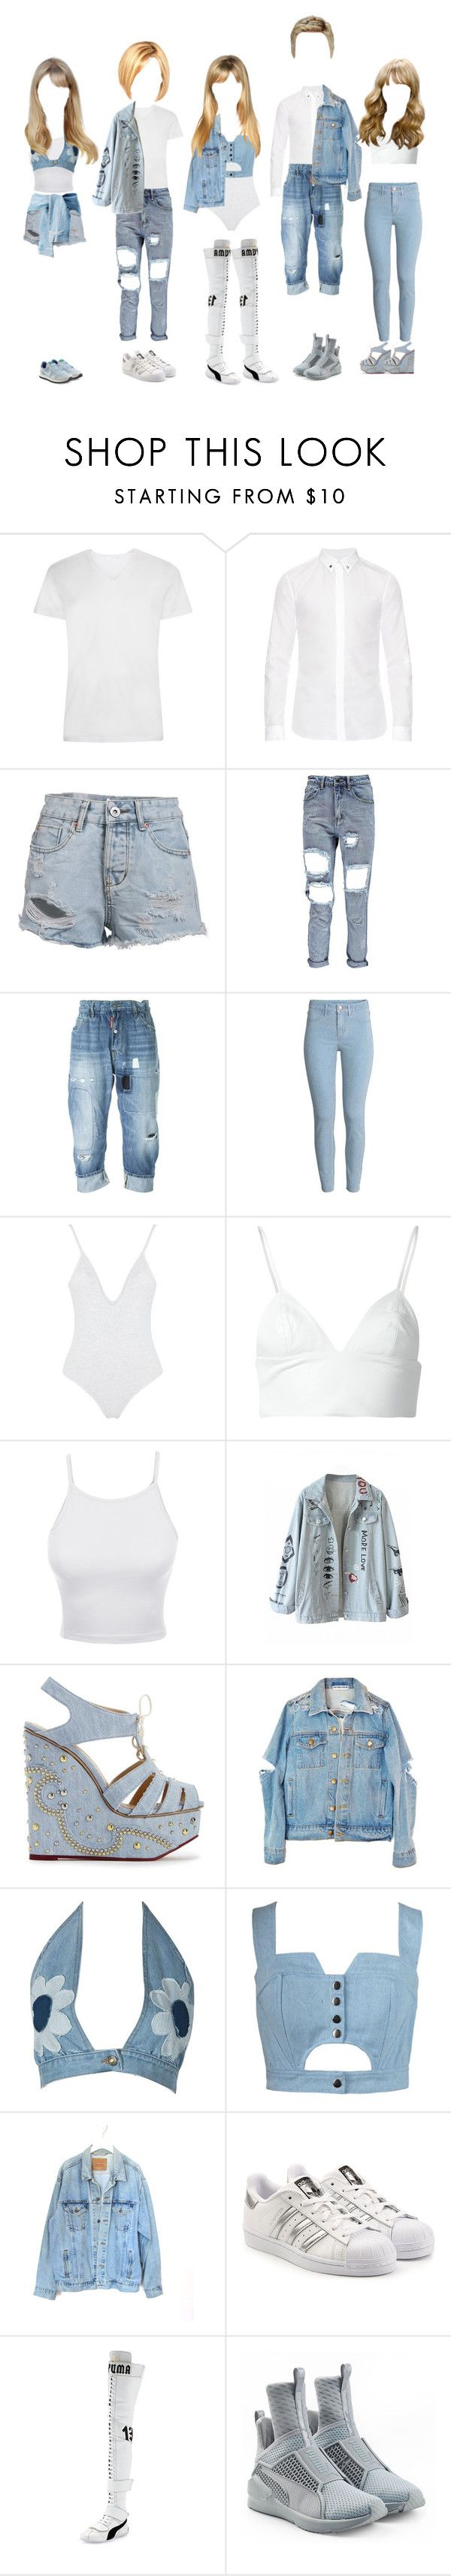 """""""Quintuplets Team"""" by everysimpleplan ❤ liked on Polyvore featuring Givenchy, Dsquared2, T By Alexander Wang, LE3NO, Charlotte Olympia, WithChic, Chicnova Fashion, Levi's, adidas Originals and Puma"""